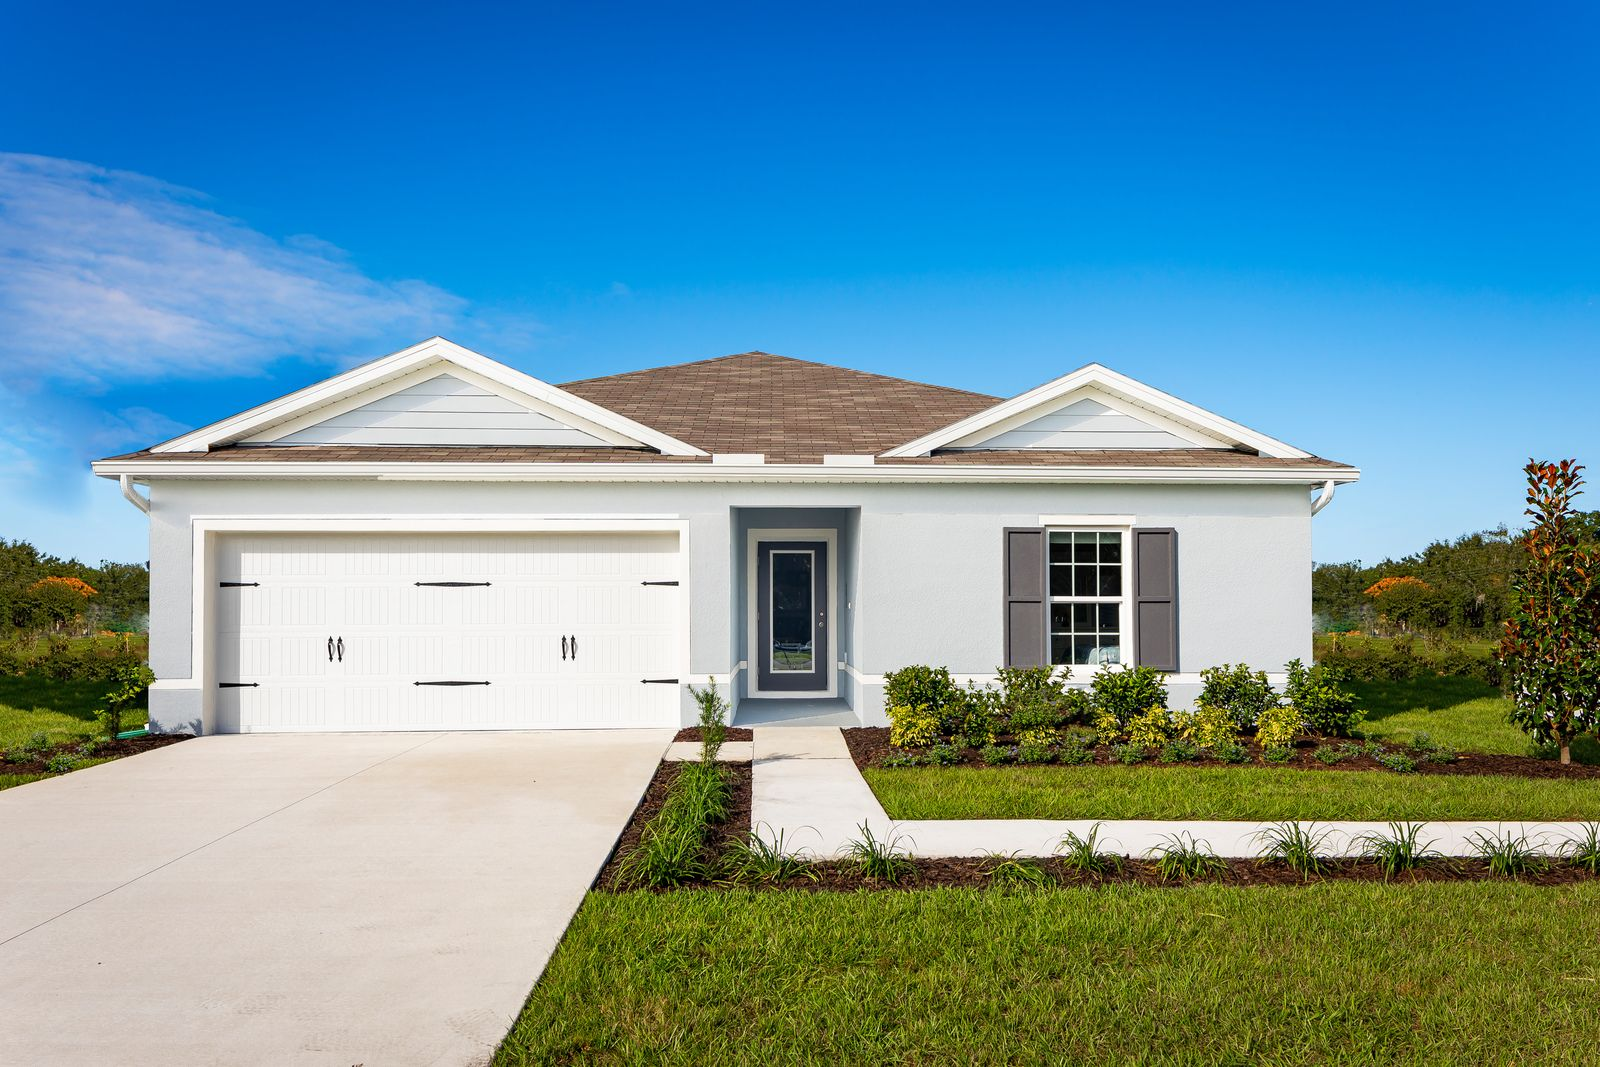 Welcome to Orchid Terrace in Haines City, FL